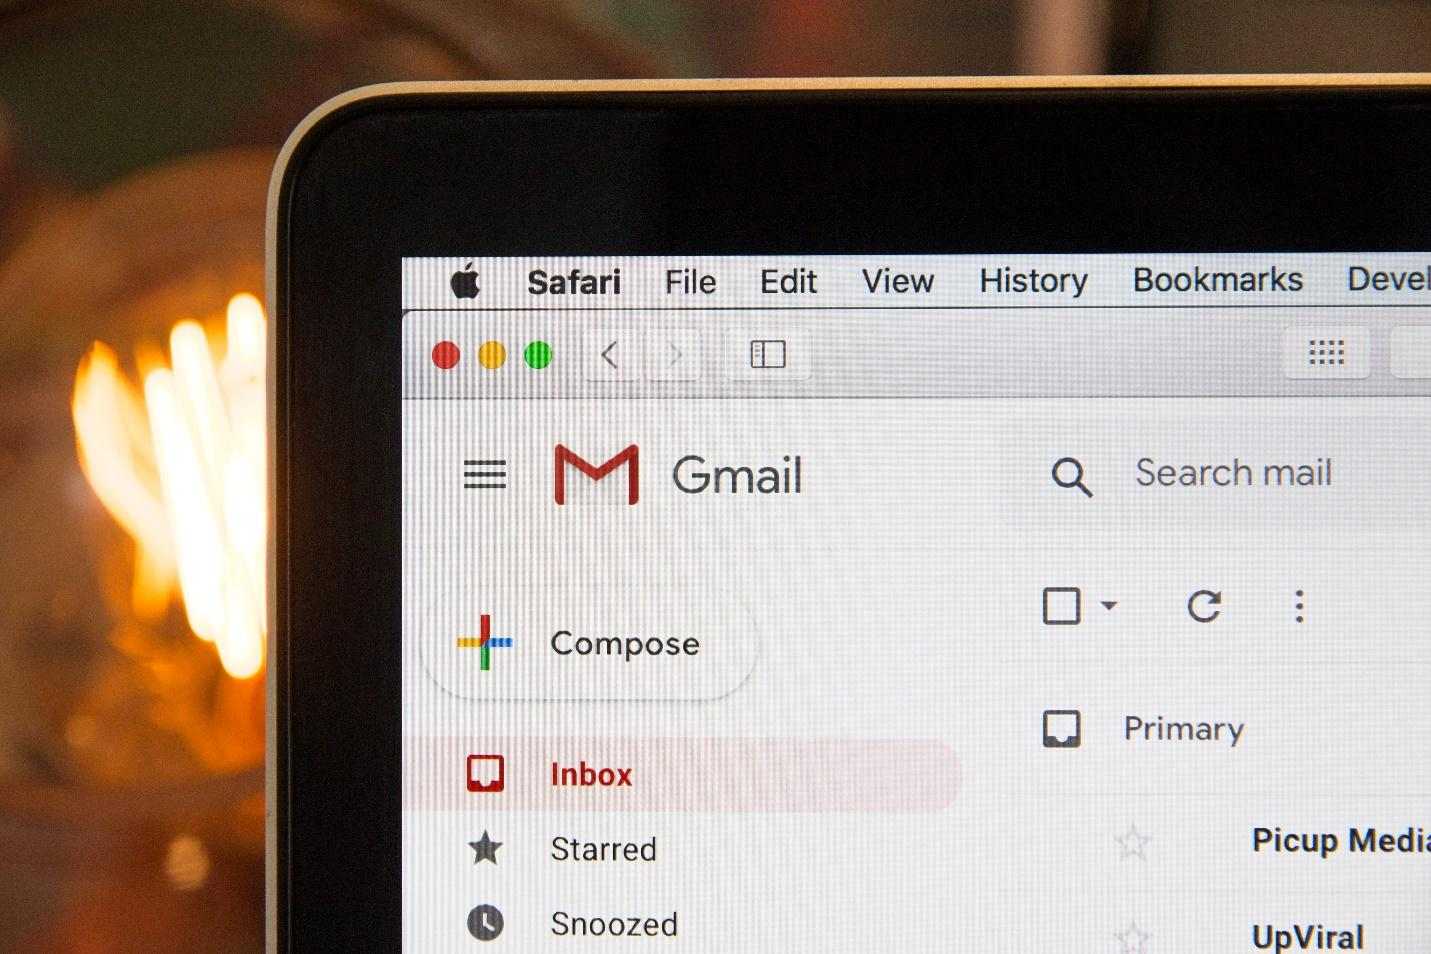 A Gmail home page